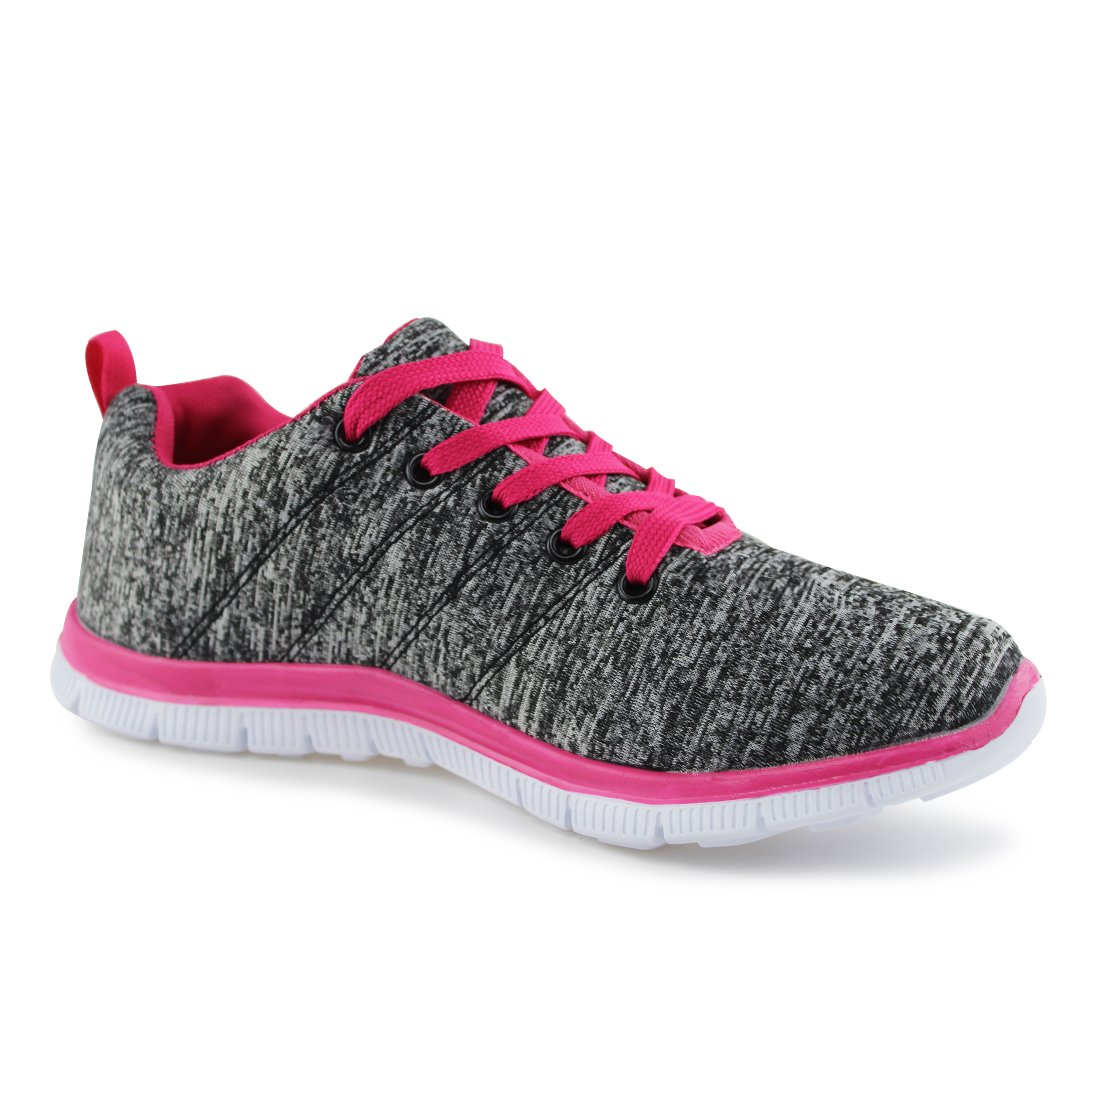 Hawkwell Women's Light Weight Sport Fashion US|Grey-2 Sneaker B0725LJCW8 7 B(M) US|Grey-2 Fashion 50ac7c